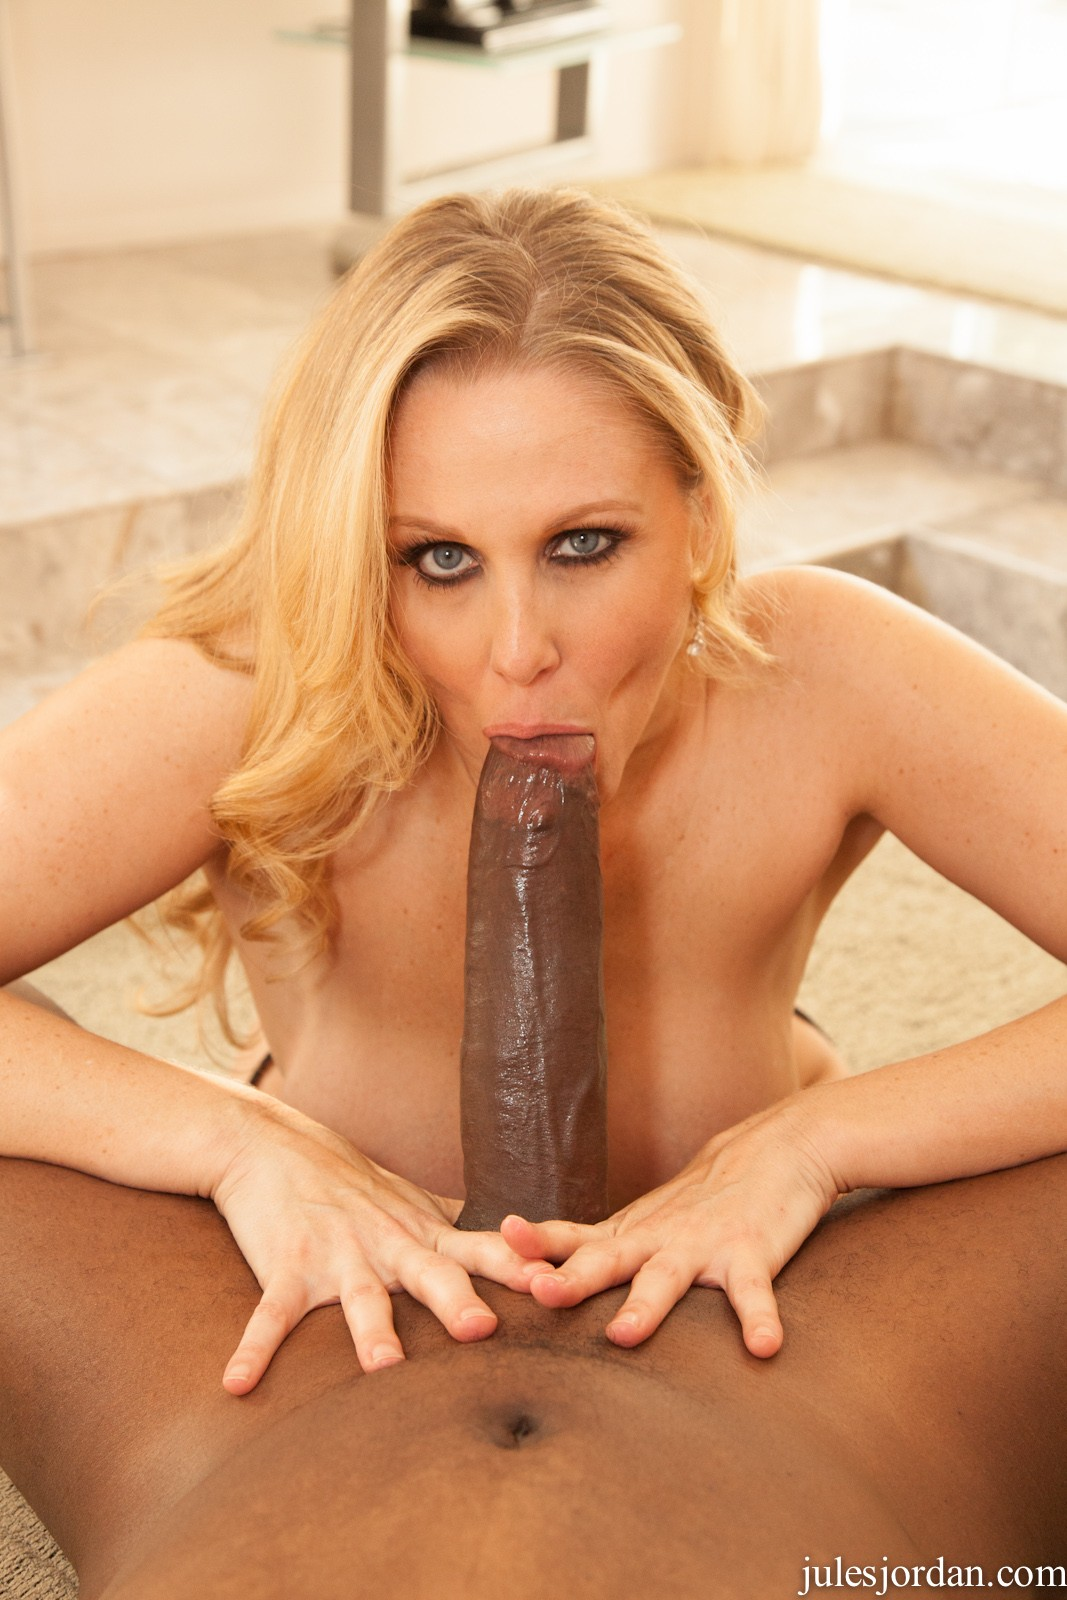 Petite blonde milf gets stretched in dirk is huge 9